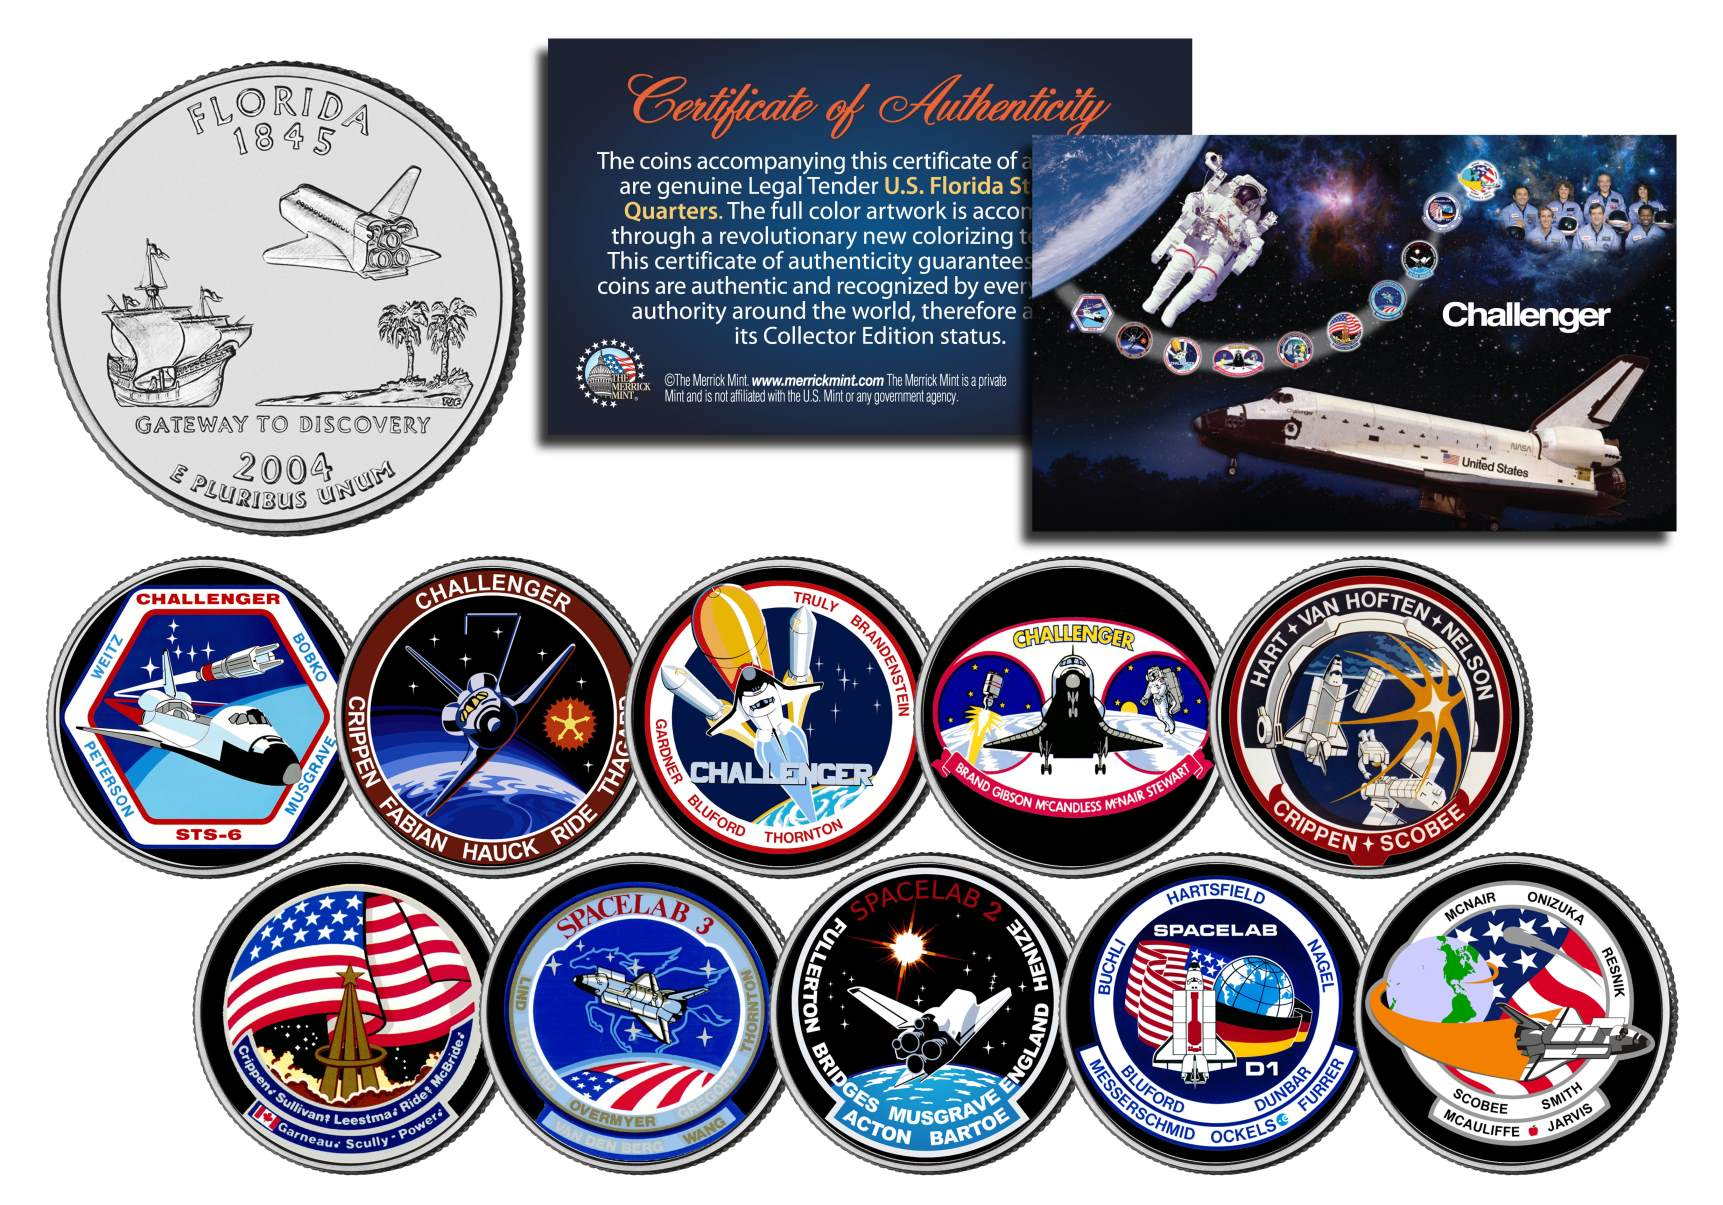 space shuttle challenger coins - photo #34